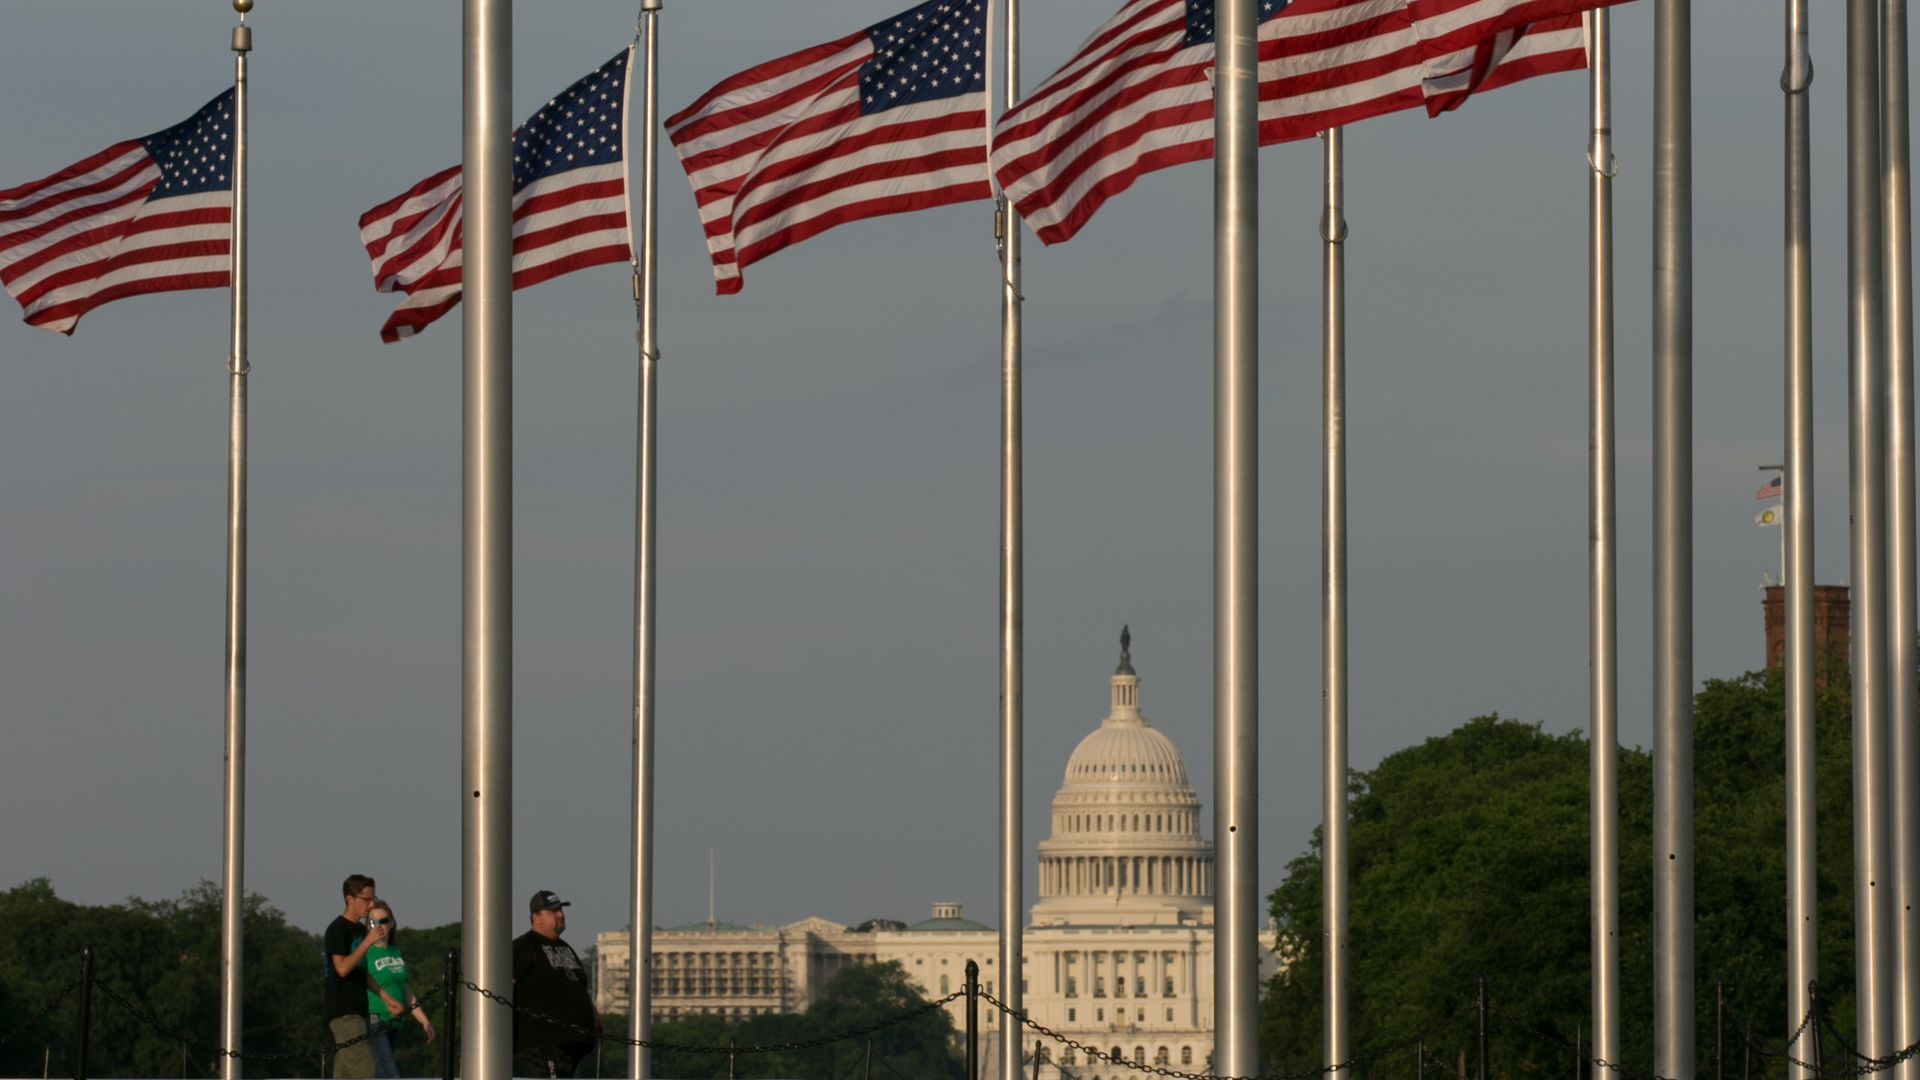 American flags on poles in a circle, with the Capitol Dome in the background